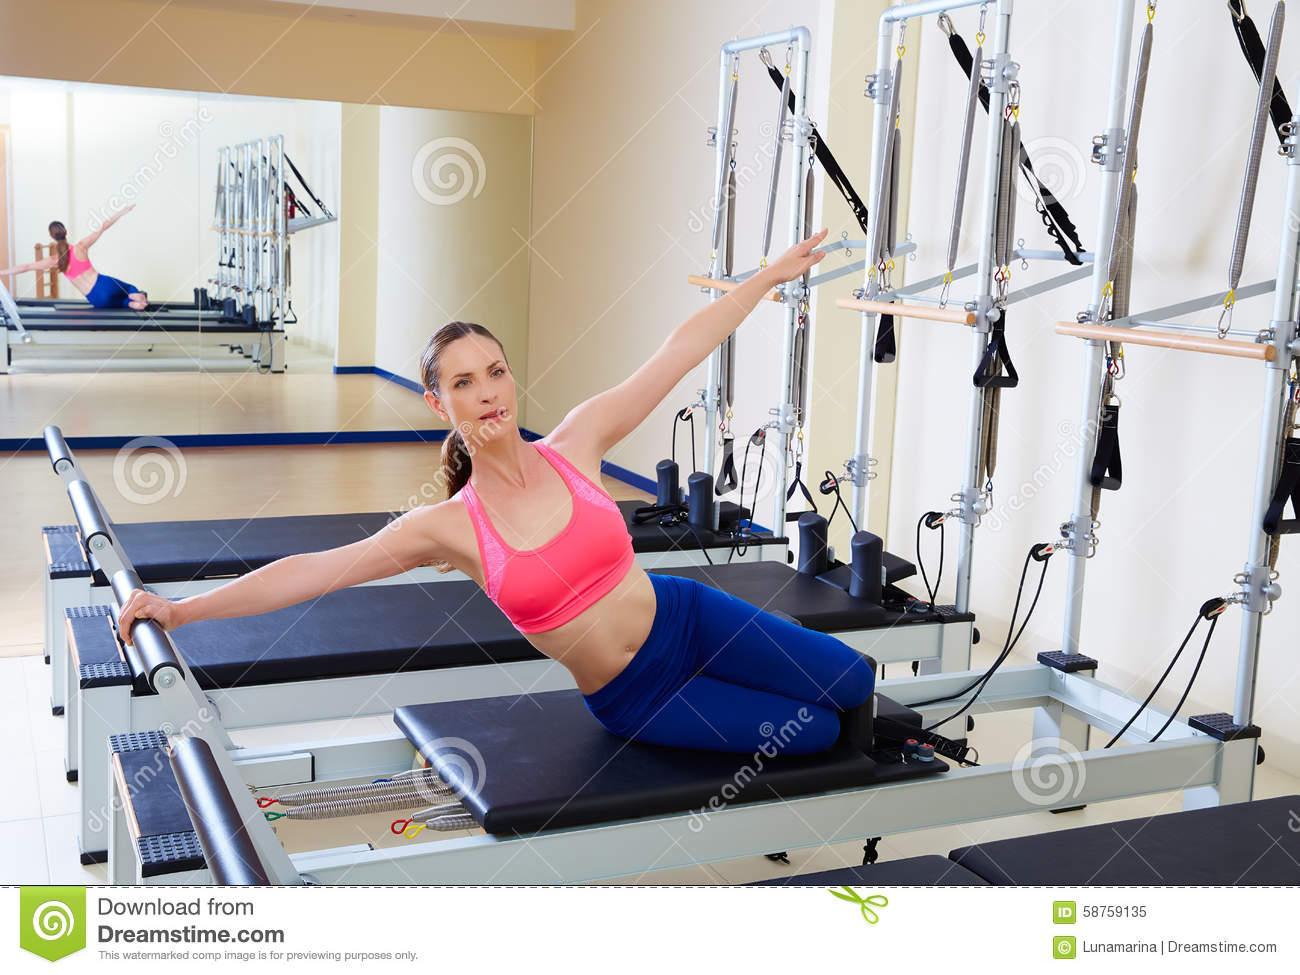 Pilates reformer woman mermaid exercise stock image for Gimnasio pilates